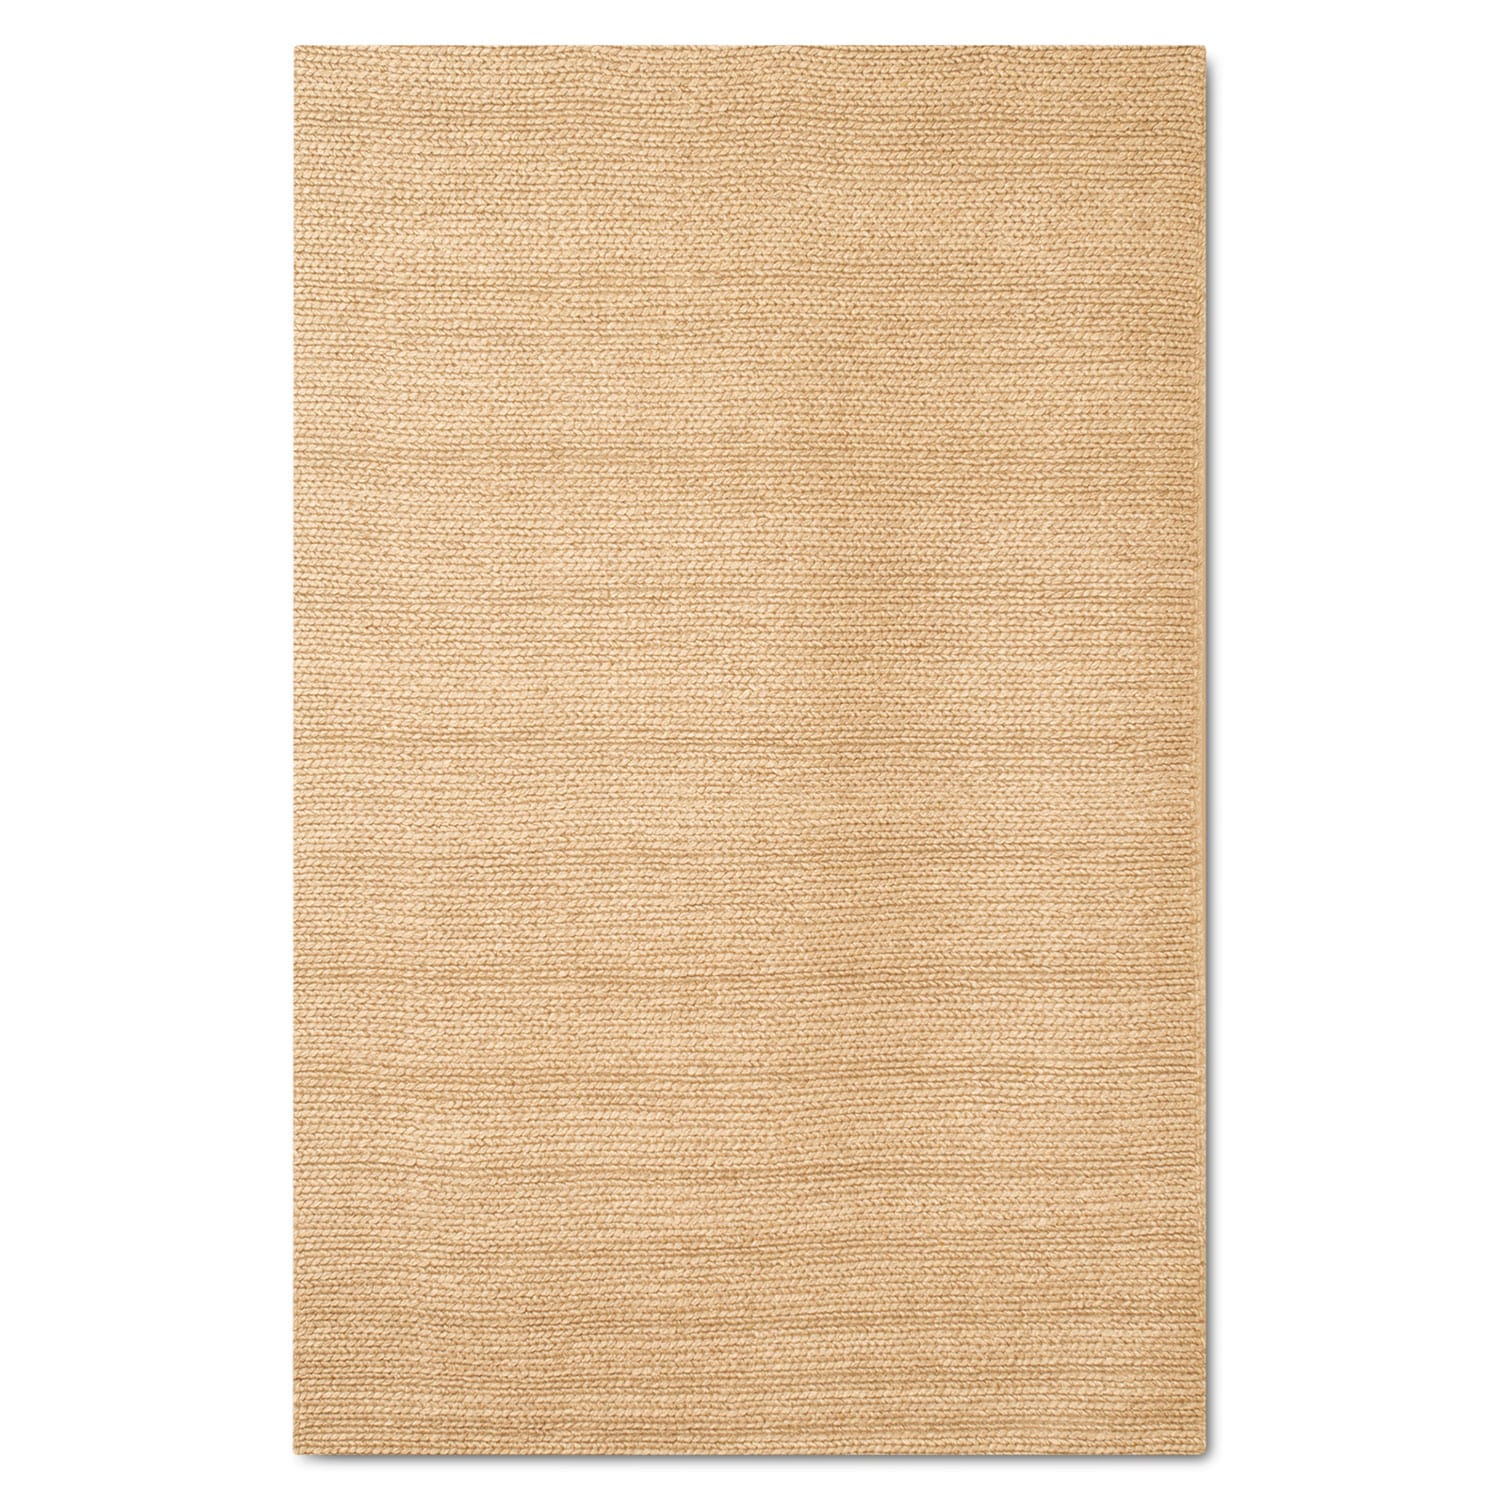 Rugs - Pixley Area Rug - Tan